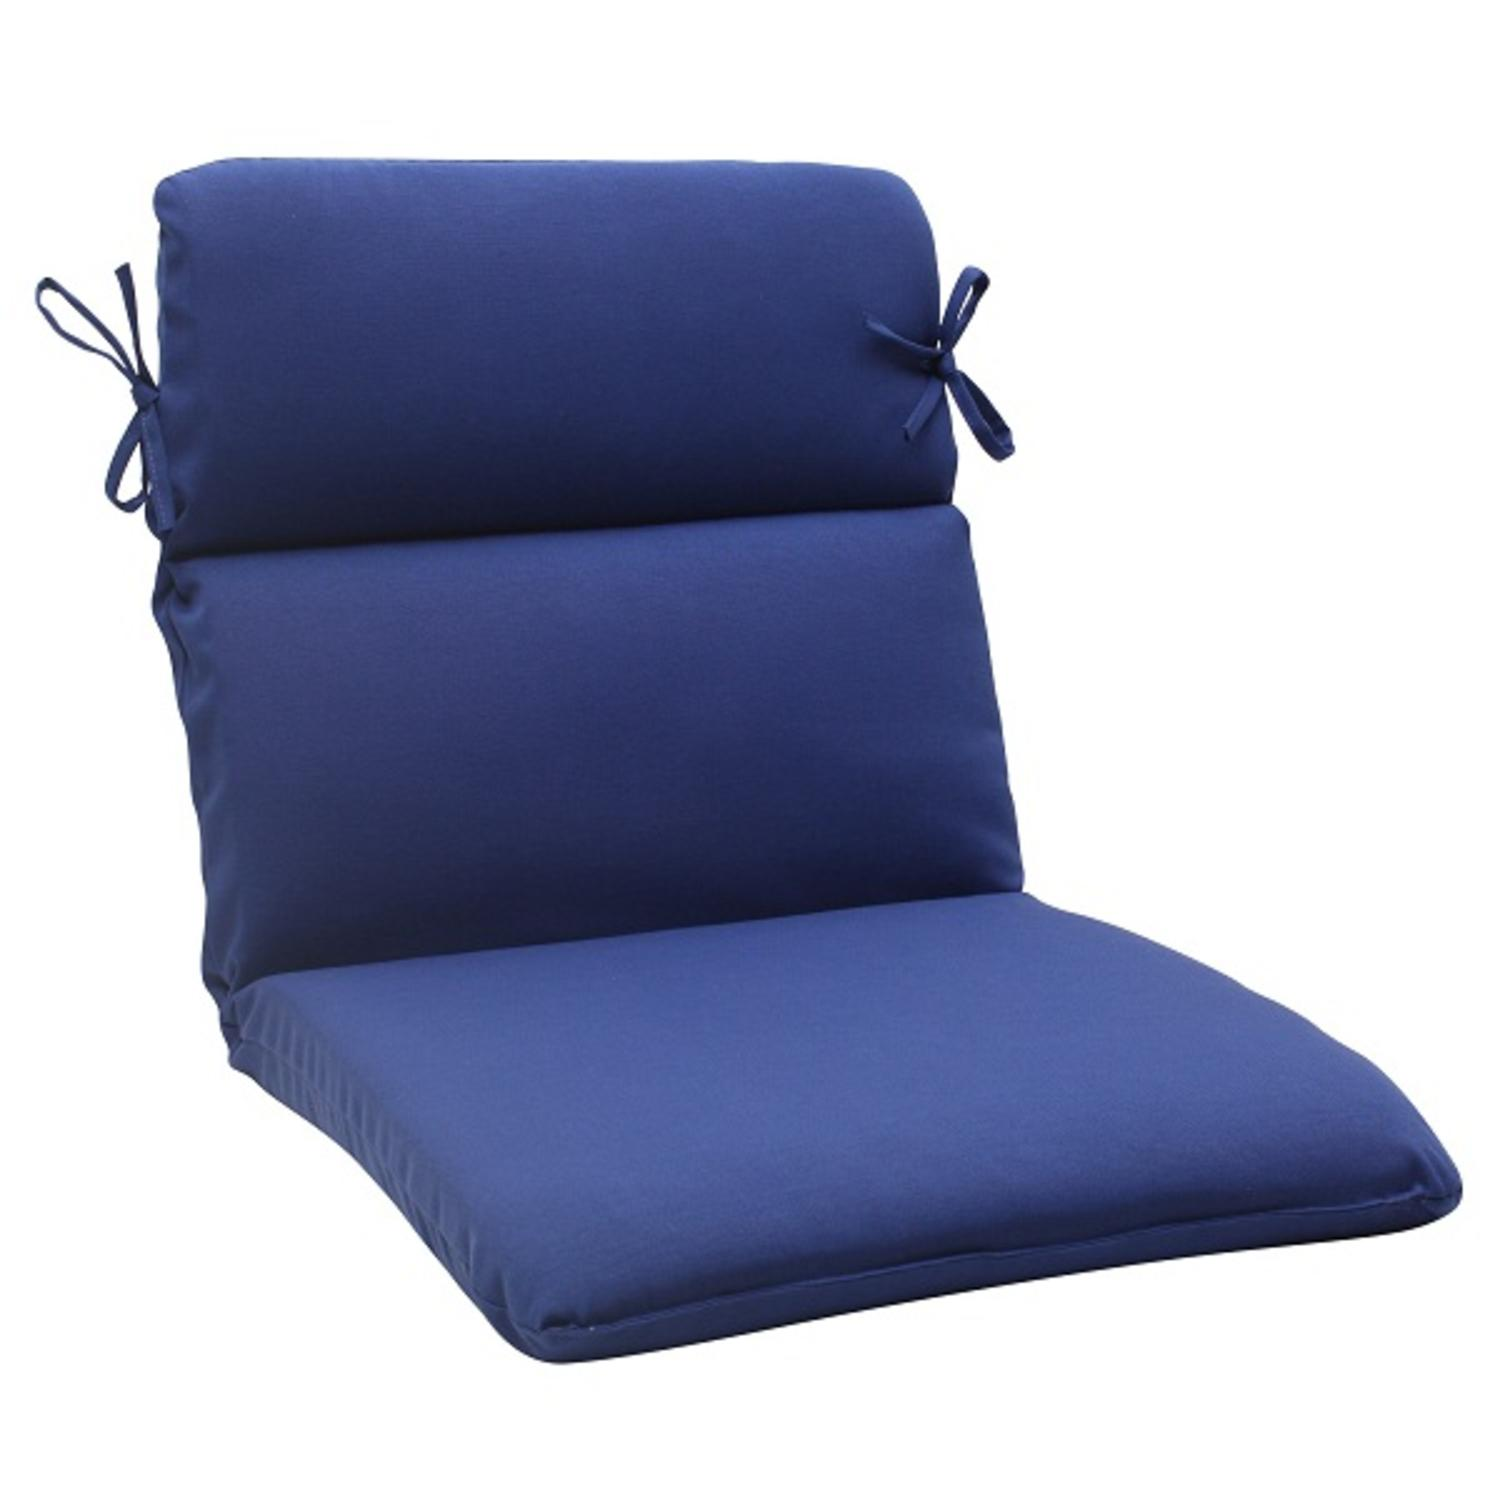 """40.5"""" Traditional Navy Blue Outdoor Patio Rounded Chair Cushion  with Ties"""